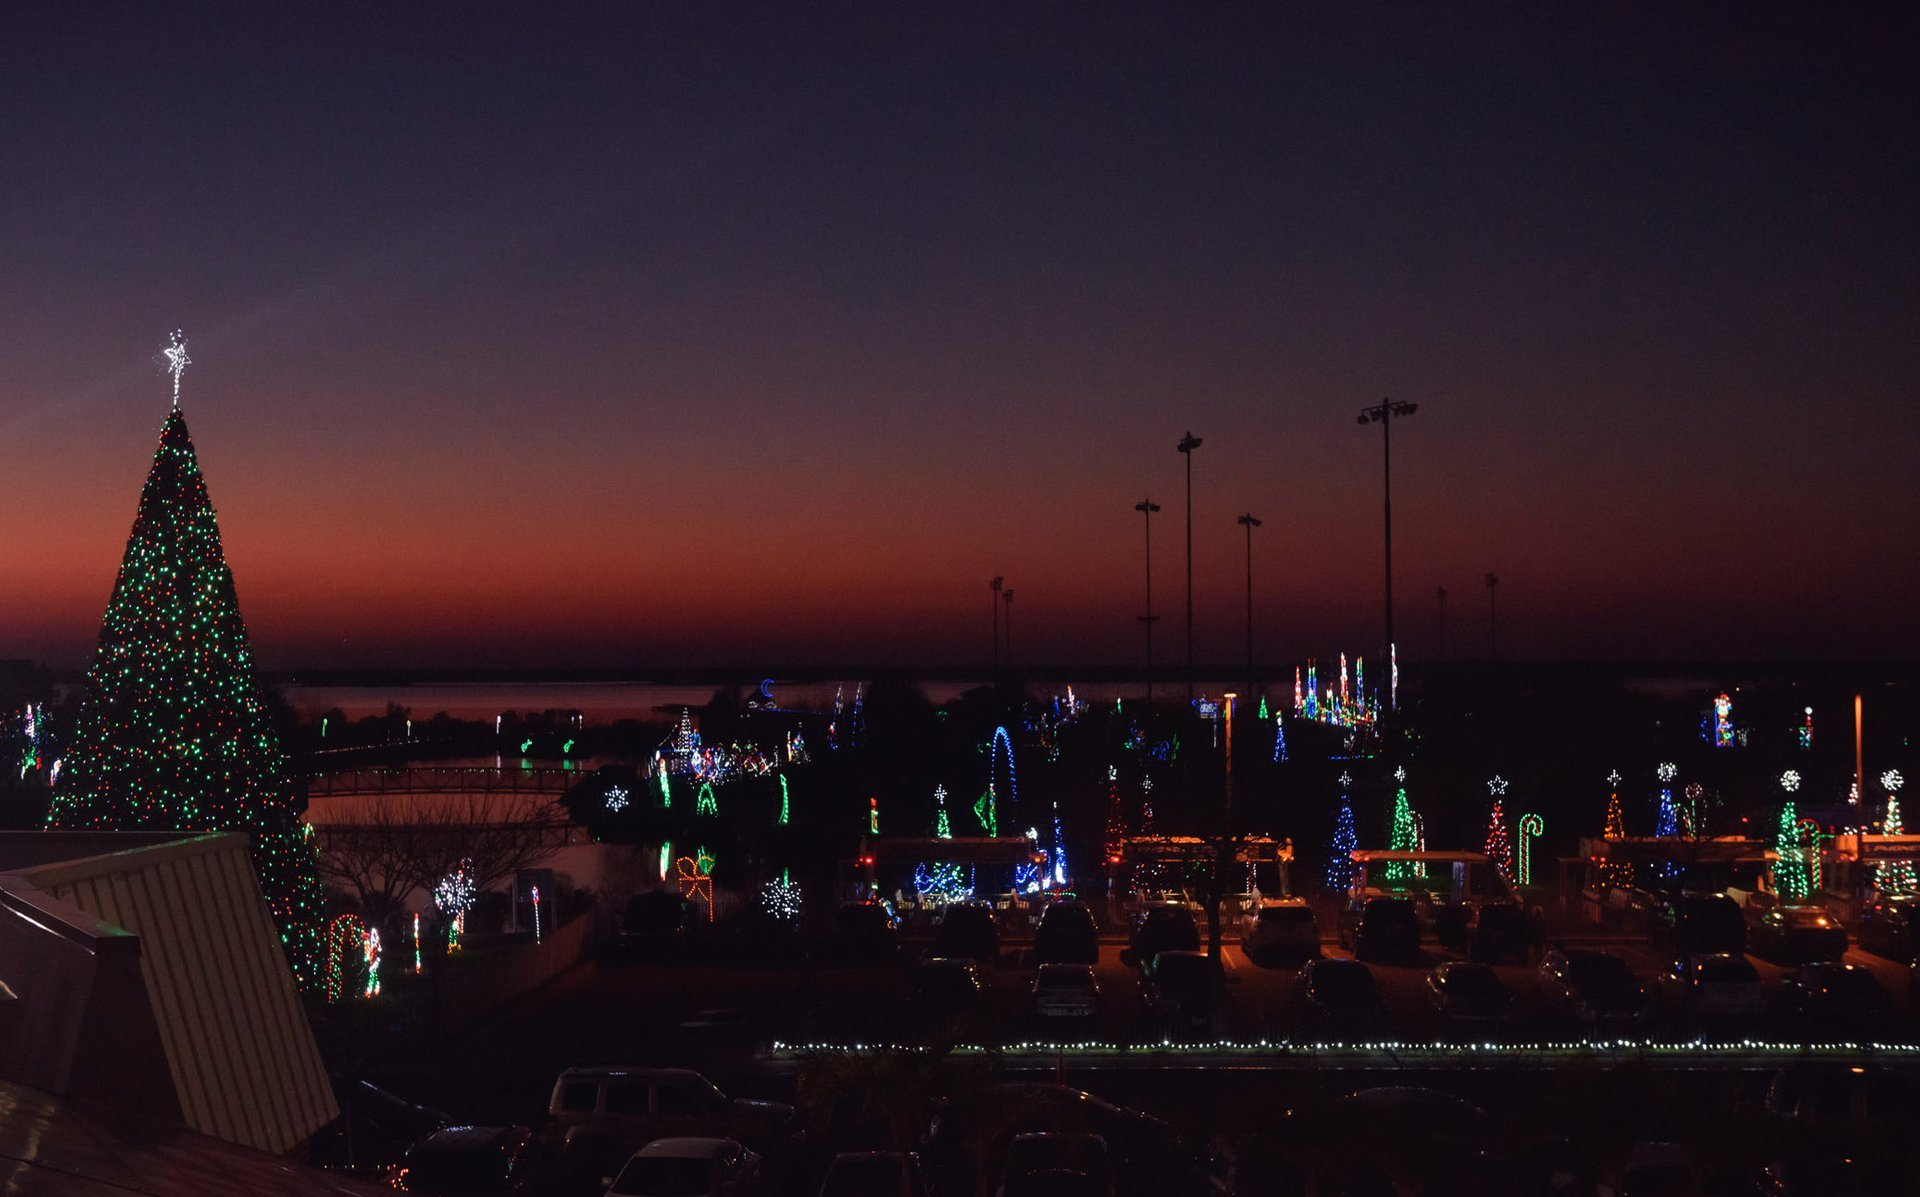 A bayside view over looking the annual Winterfest of Lights display at Northside Park 2020